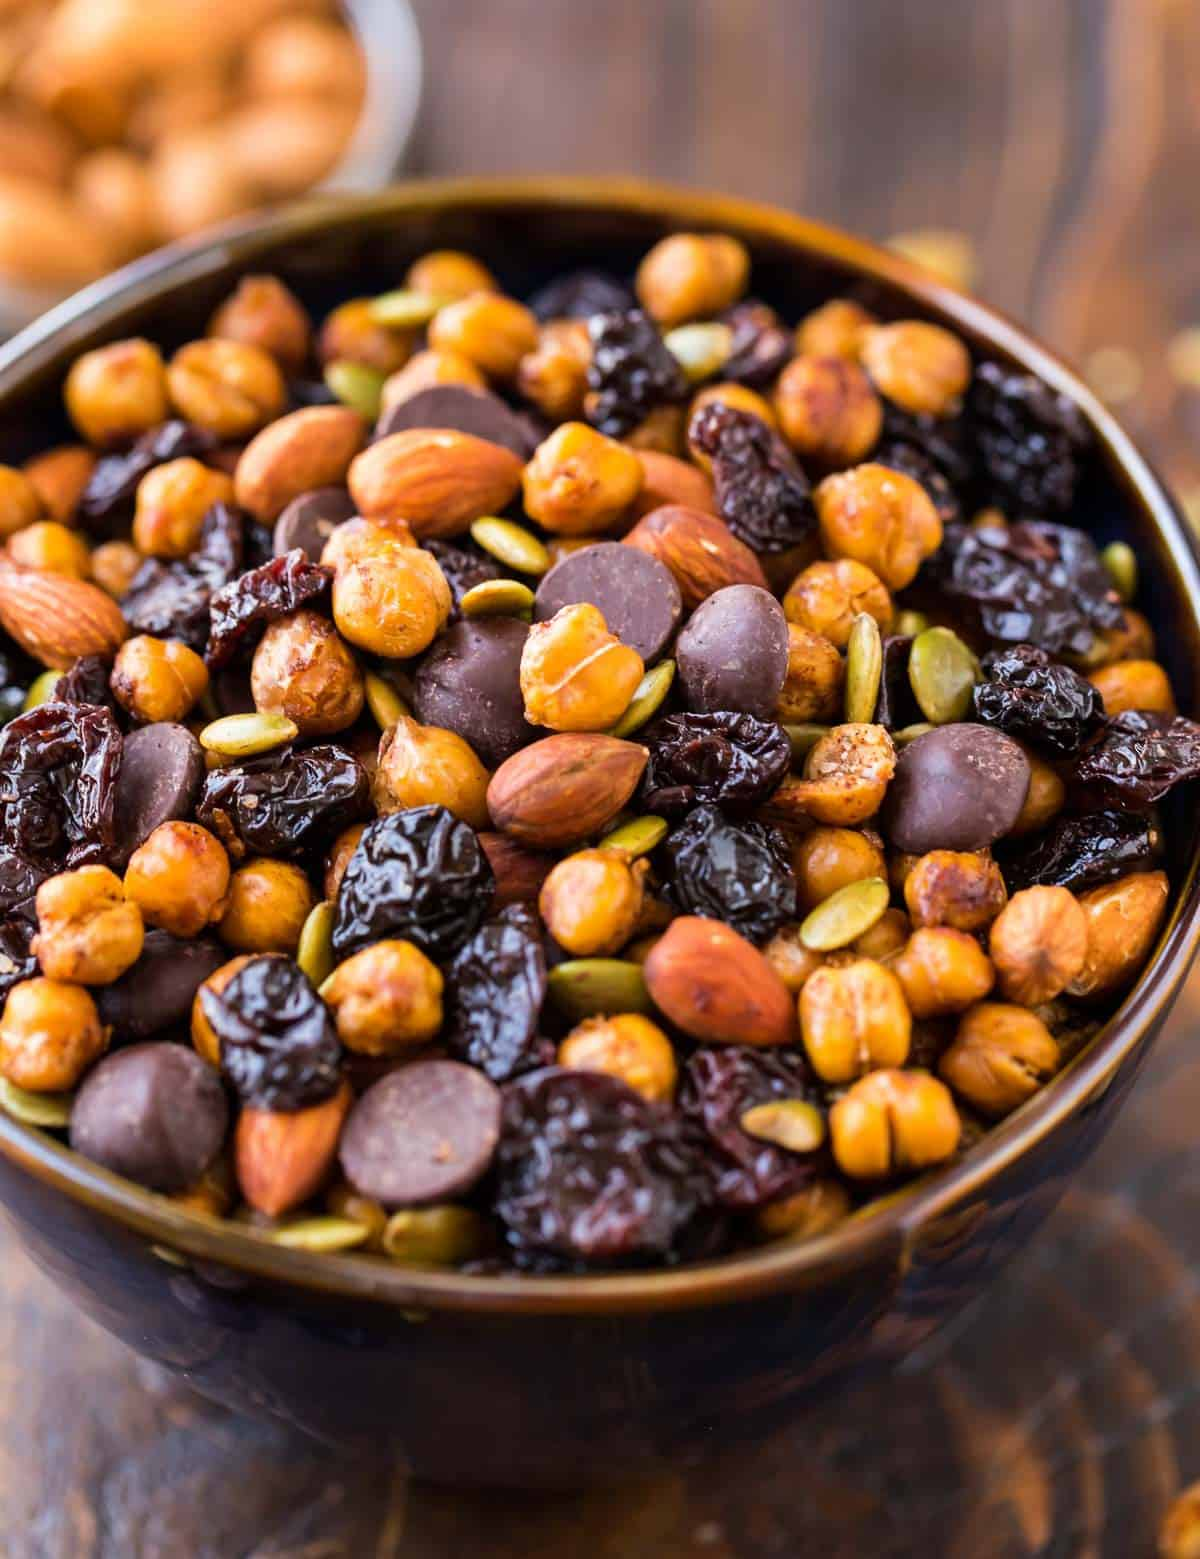 Easy Roasted Chickpea Snack Mix. This high-protein snack is perfect for afternoon snacks or workouts! Made with roasted chickpeas, cherries, almonds, and dark chocolate, it's crunch, sweet, spicy, and so addictive!